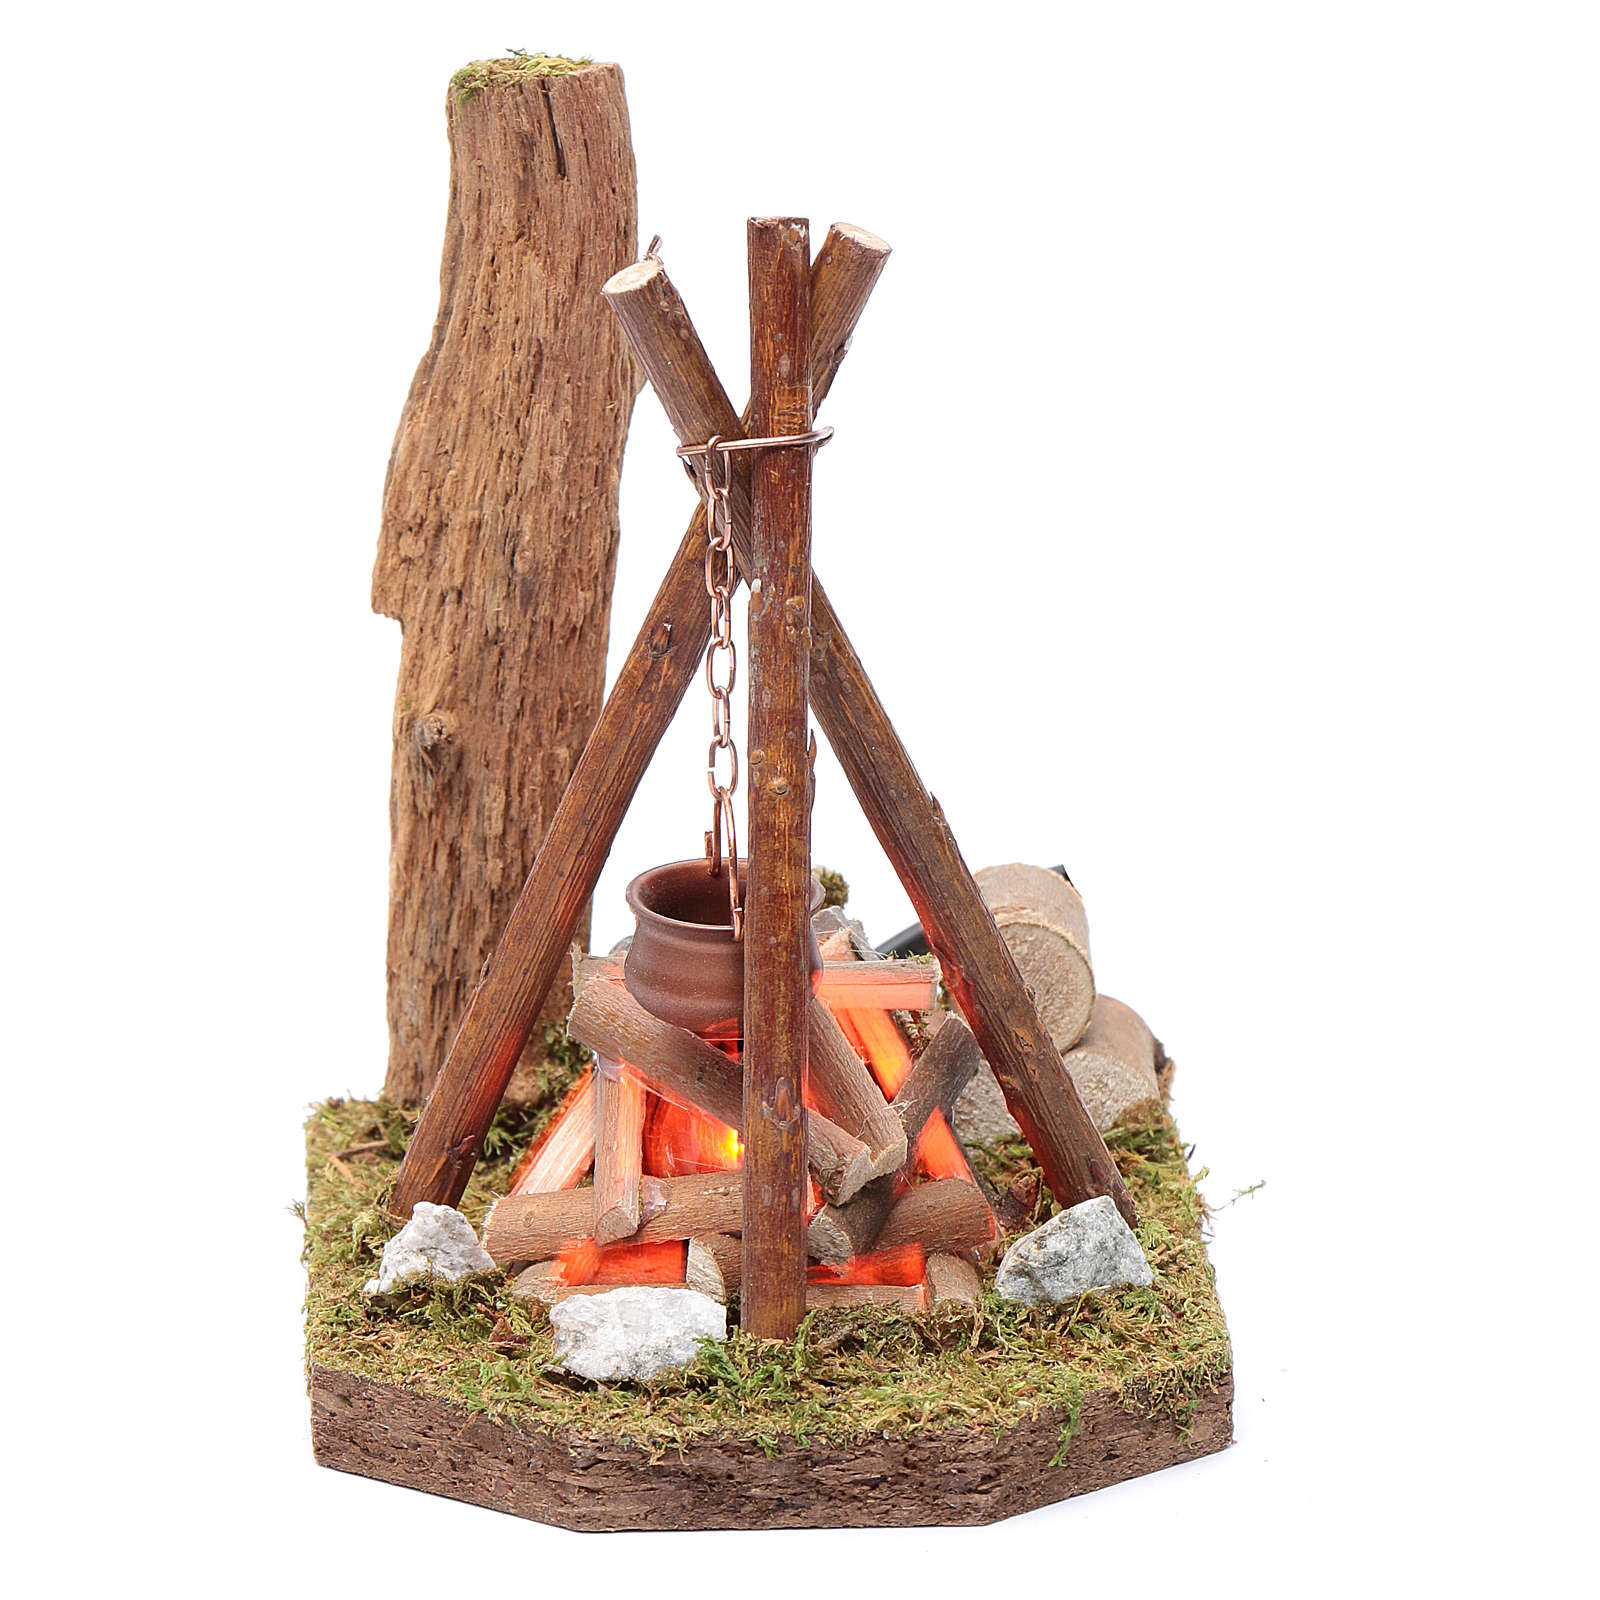 Pot and wood for bivouac 230 V 4